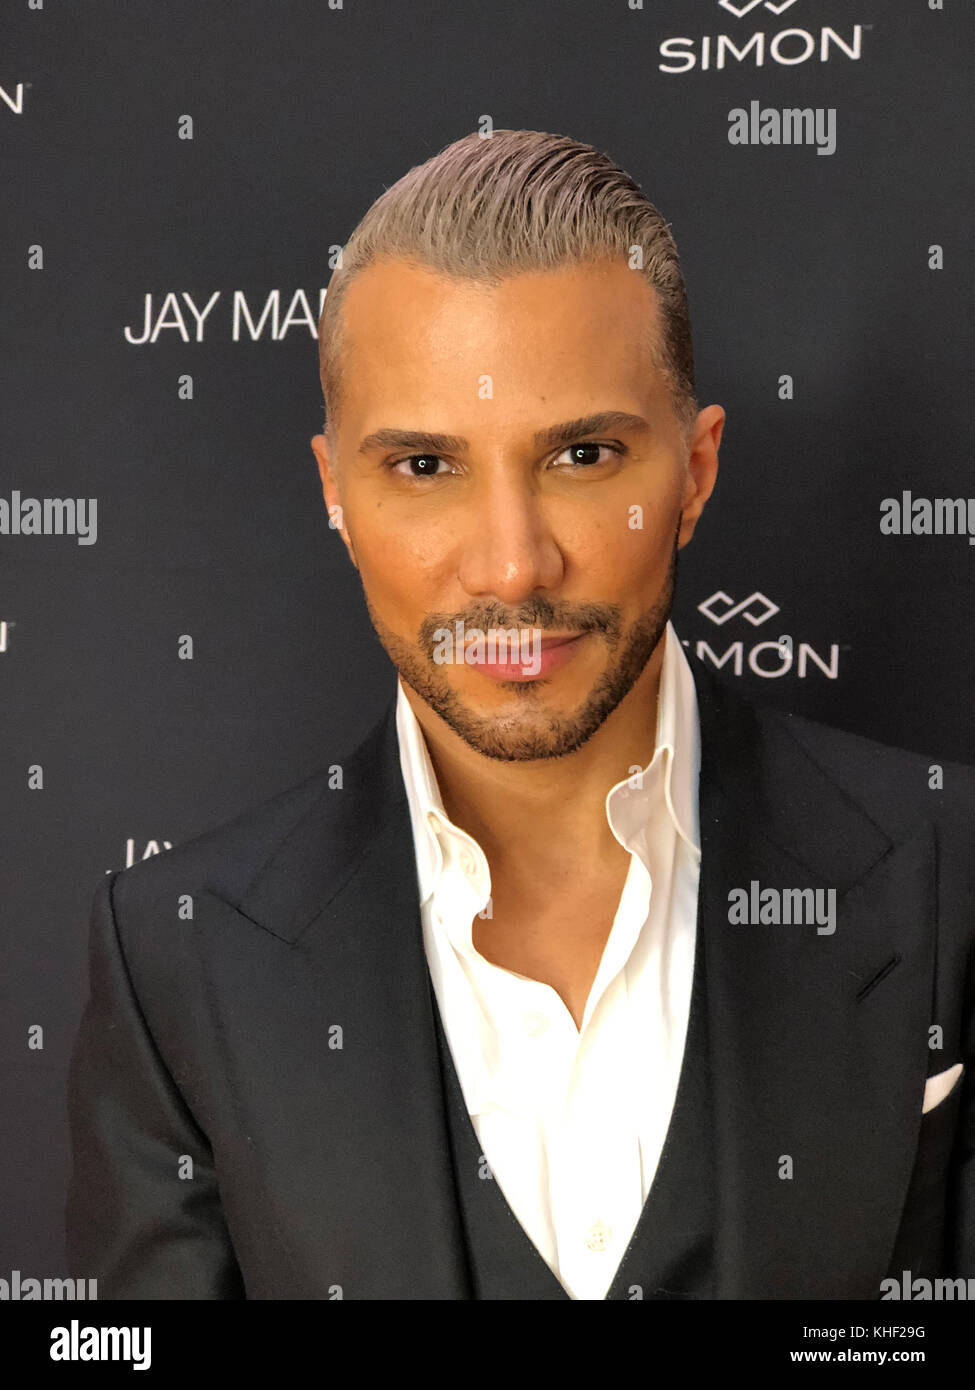 Garden City, New York, USA. 16th Nov, 2017. JAY MANUEL, 45, makeup artist and stylist, appears at Roosevelt Field - Stock Image